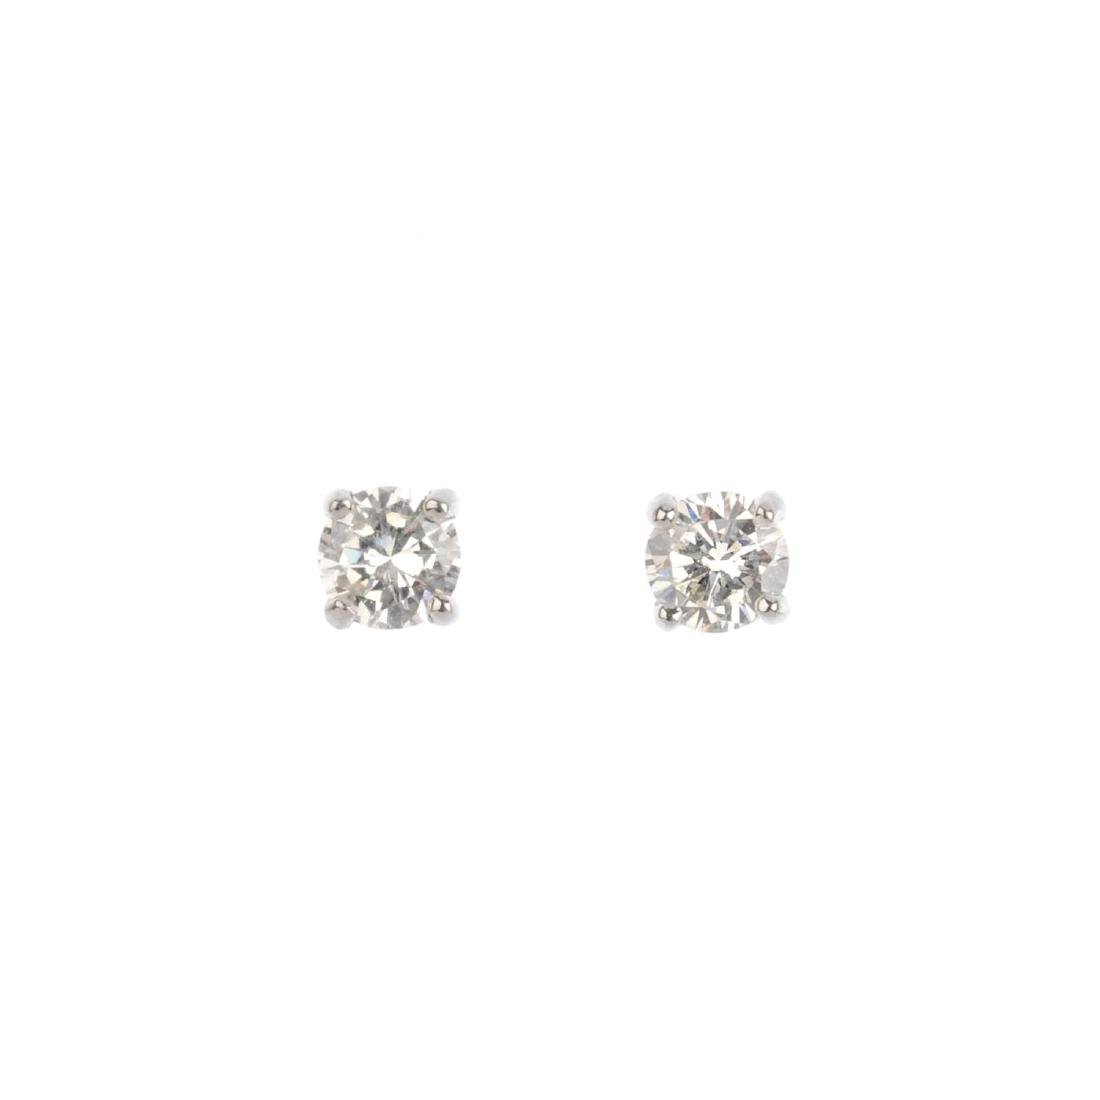 A pair of brilliant-cut diamond stud earrings. Total